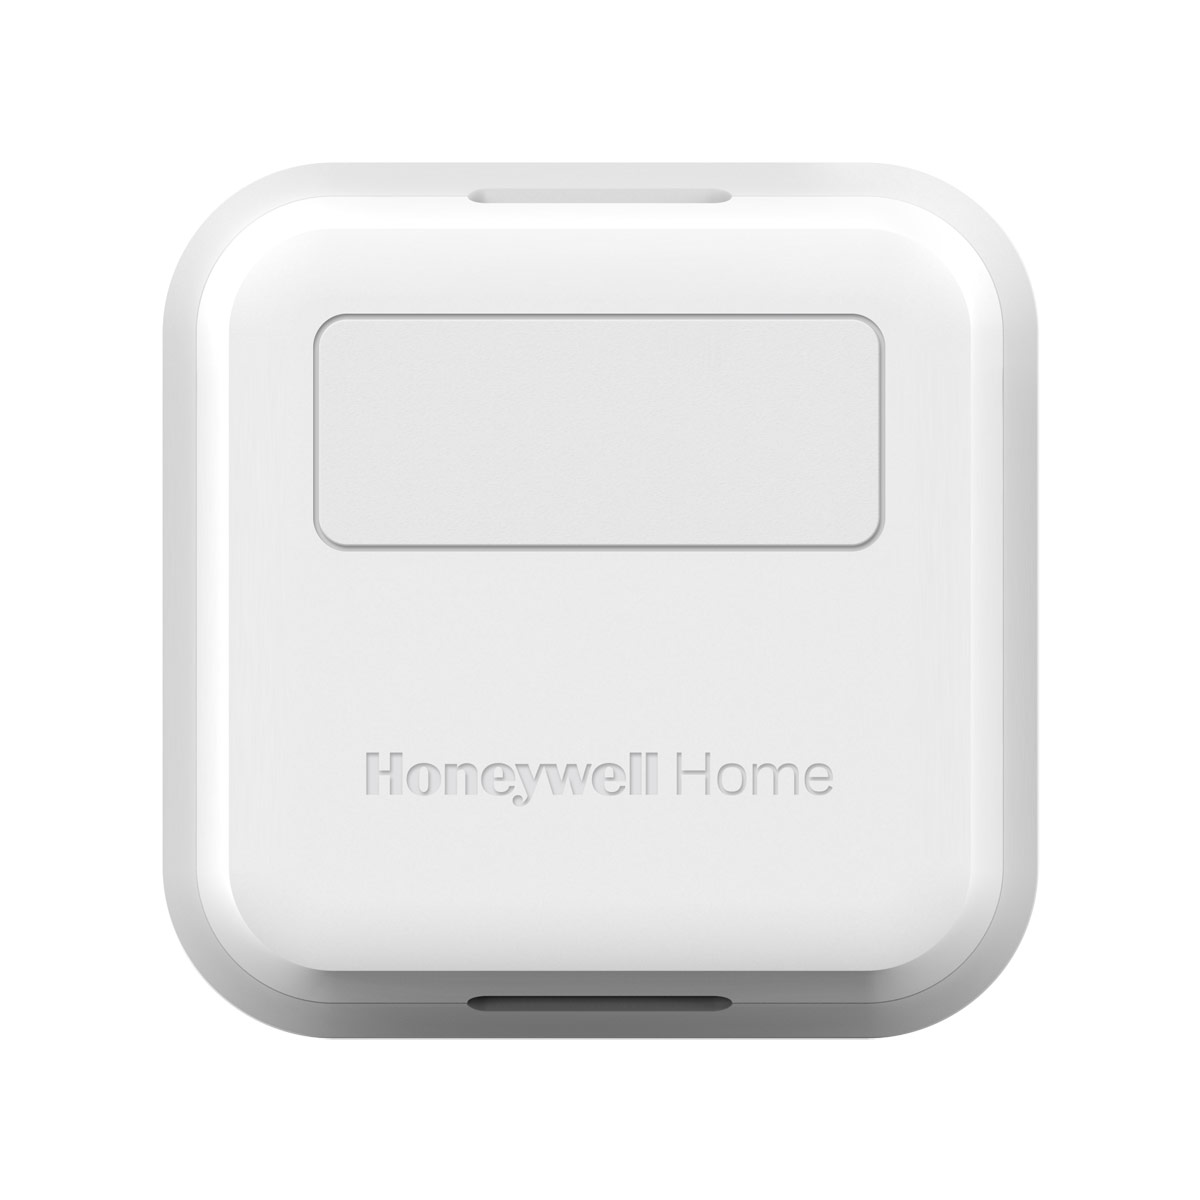 Ecobee3 Smart Thermostat With Room Sensors Manual Guide